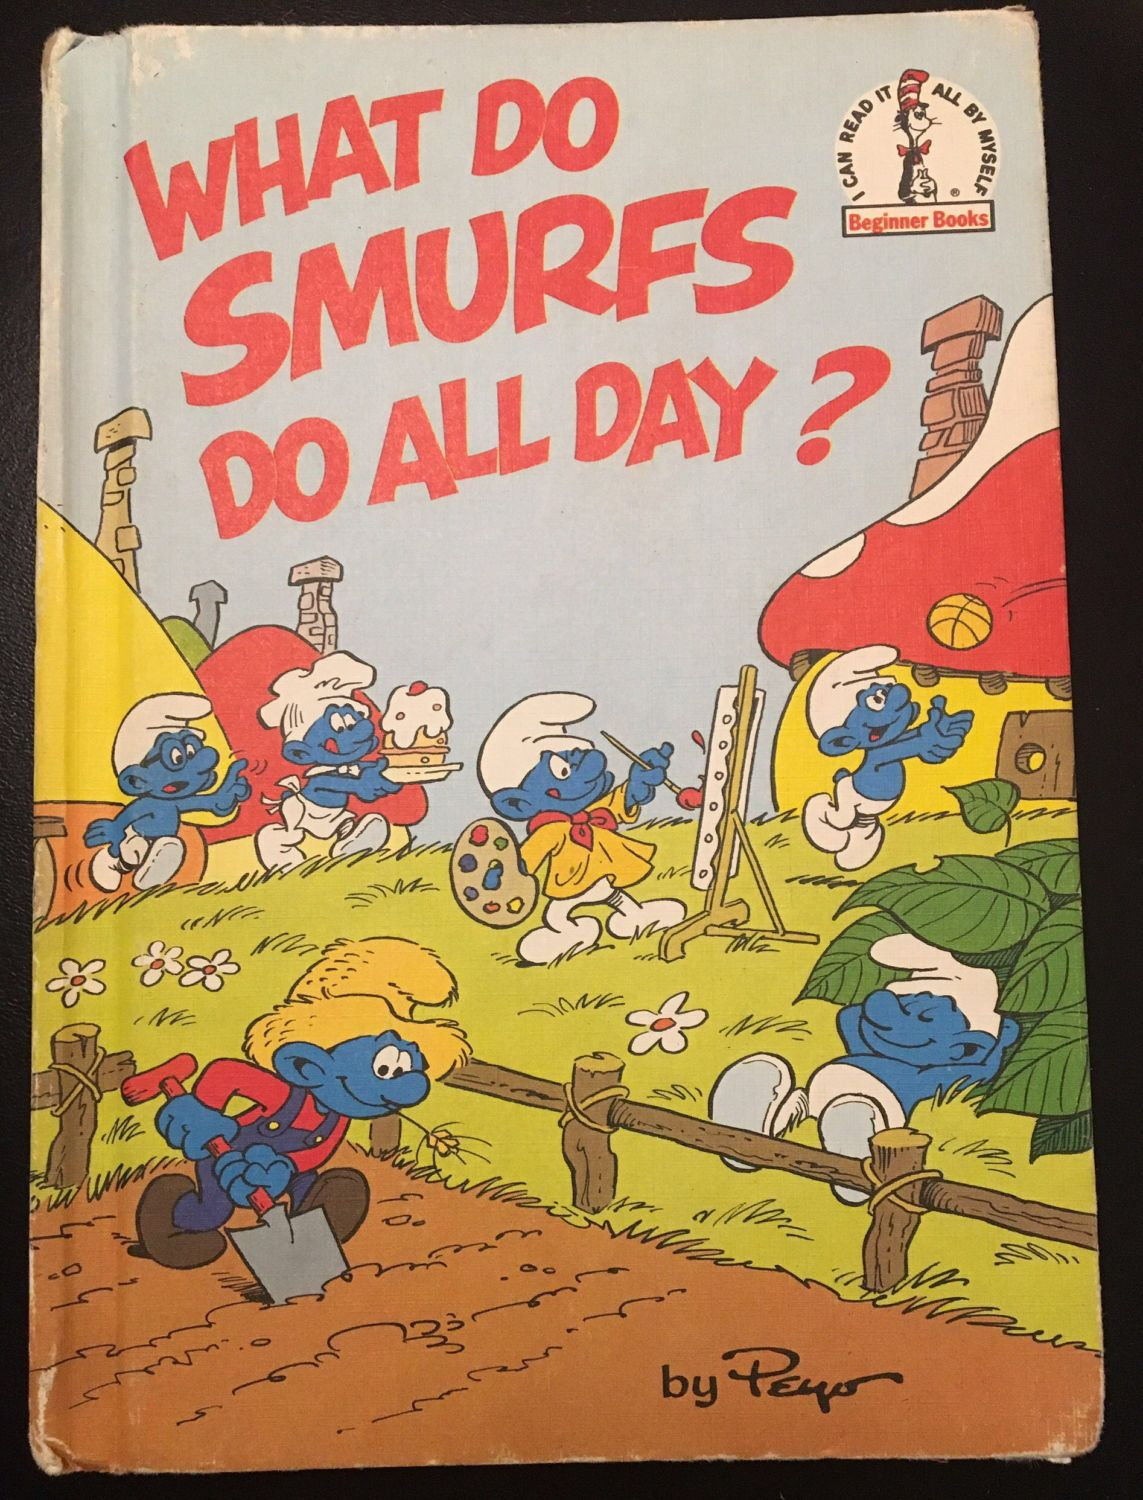 A personal favorite from my Etsy shop https://www.etsy.com/listing/507439374/what-do-smurfs-do-all-day-i-can-read-it